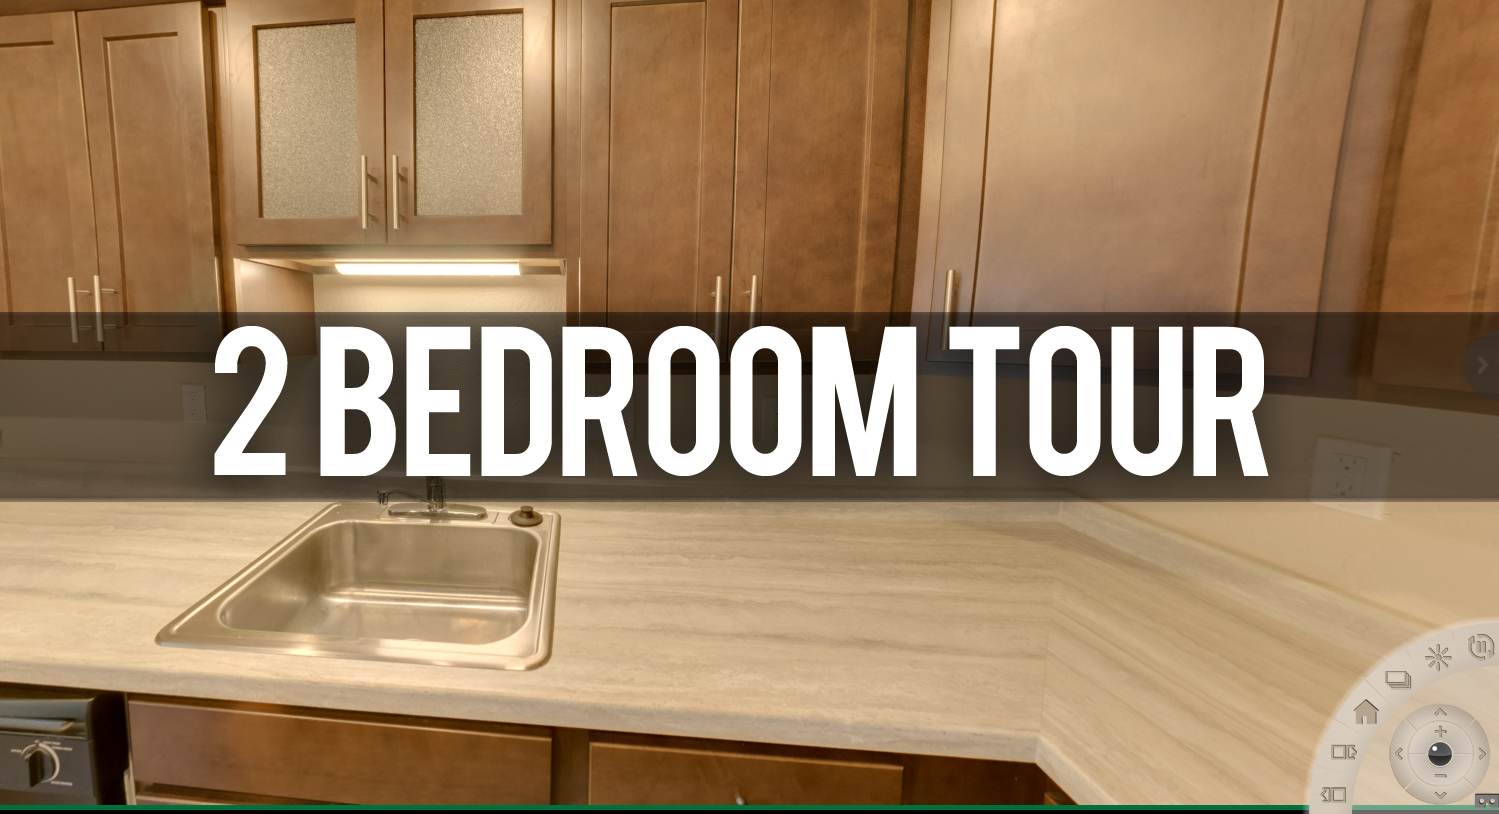 2 bedroom virtual tour Glenwood Apartments near Michigan State University